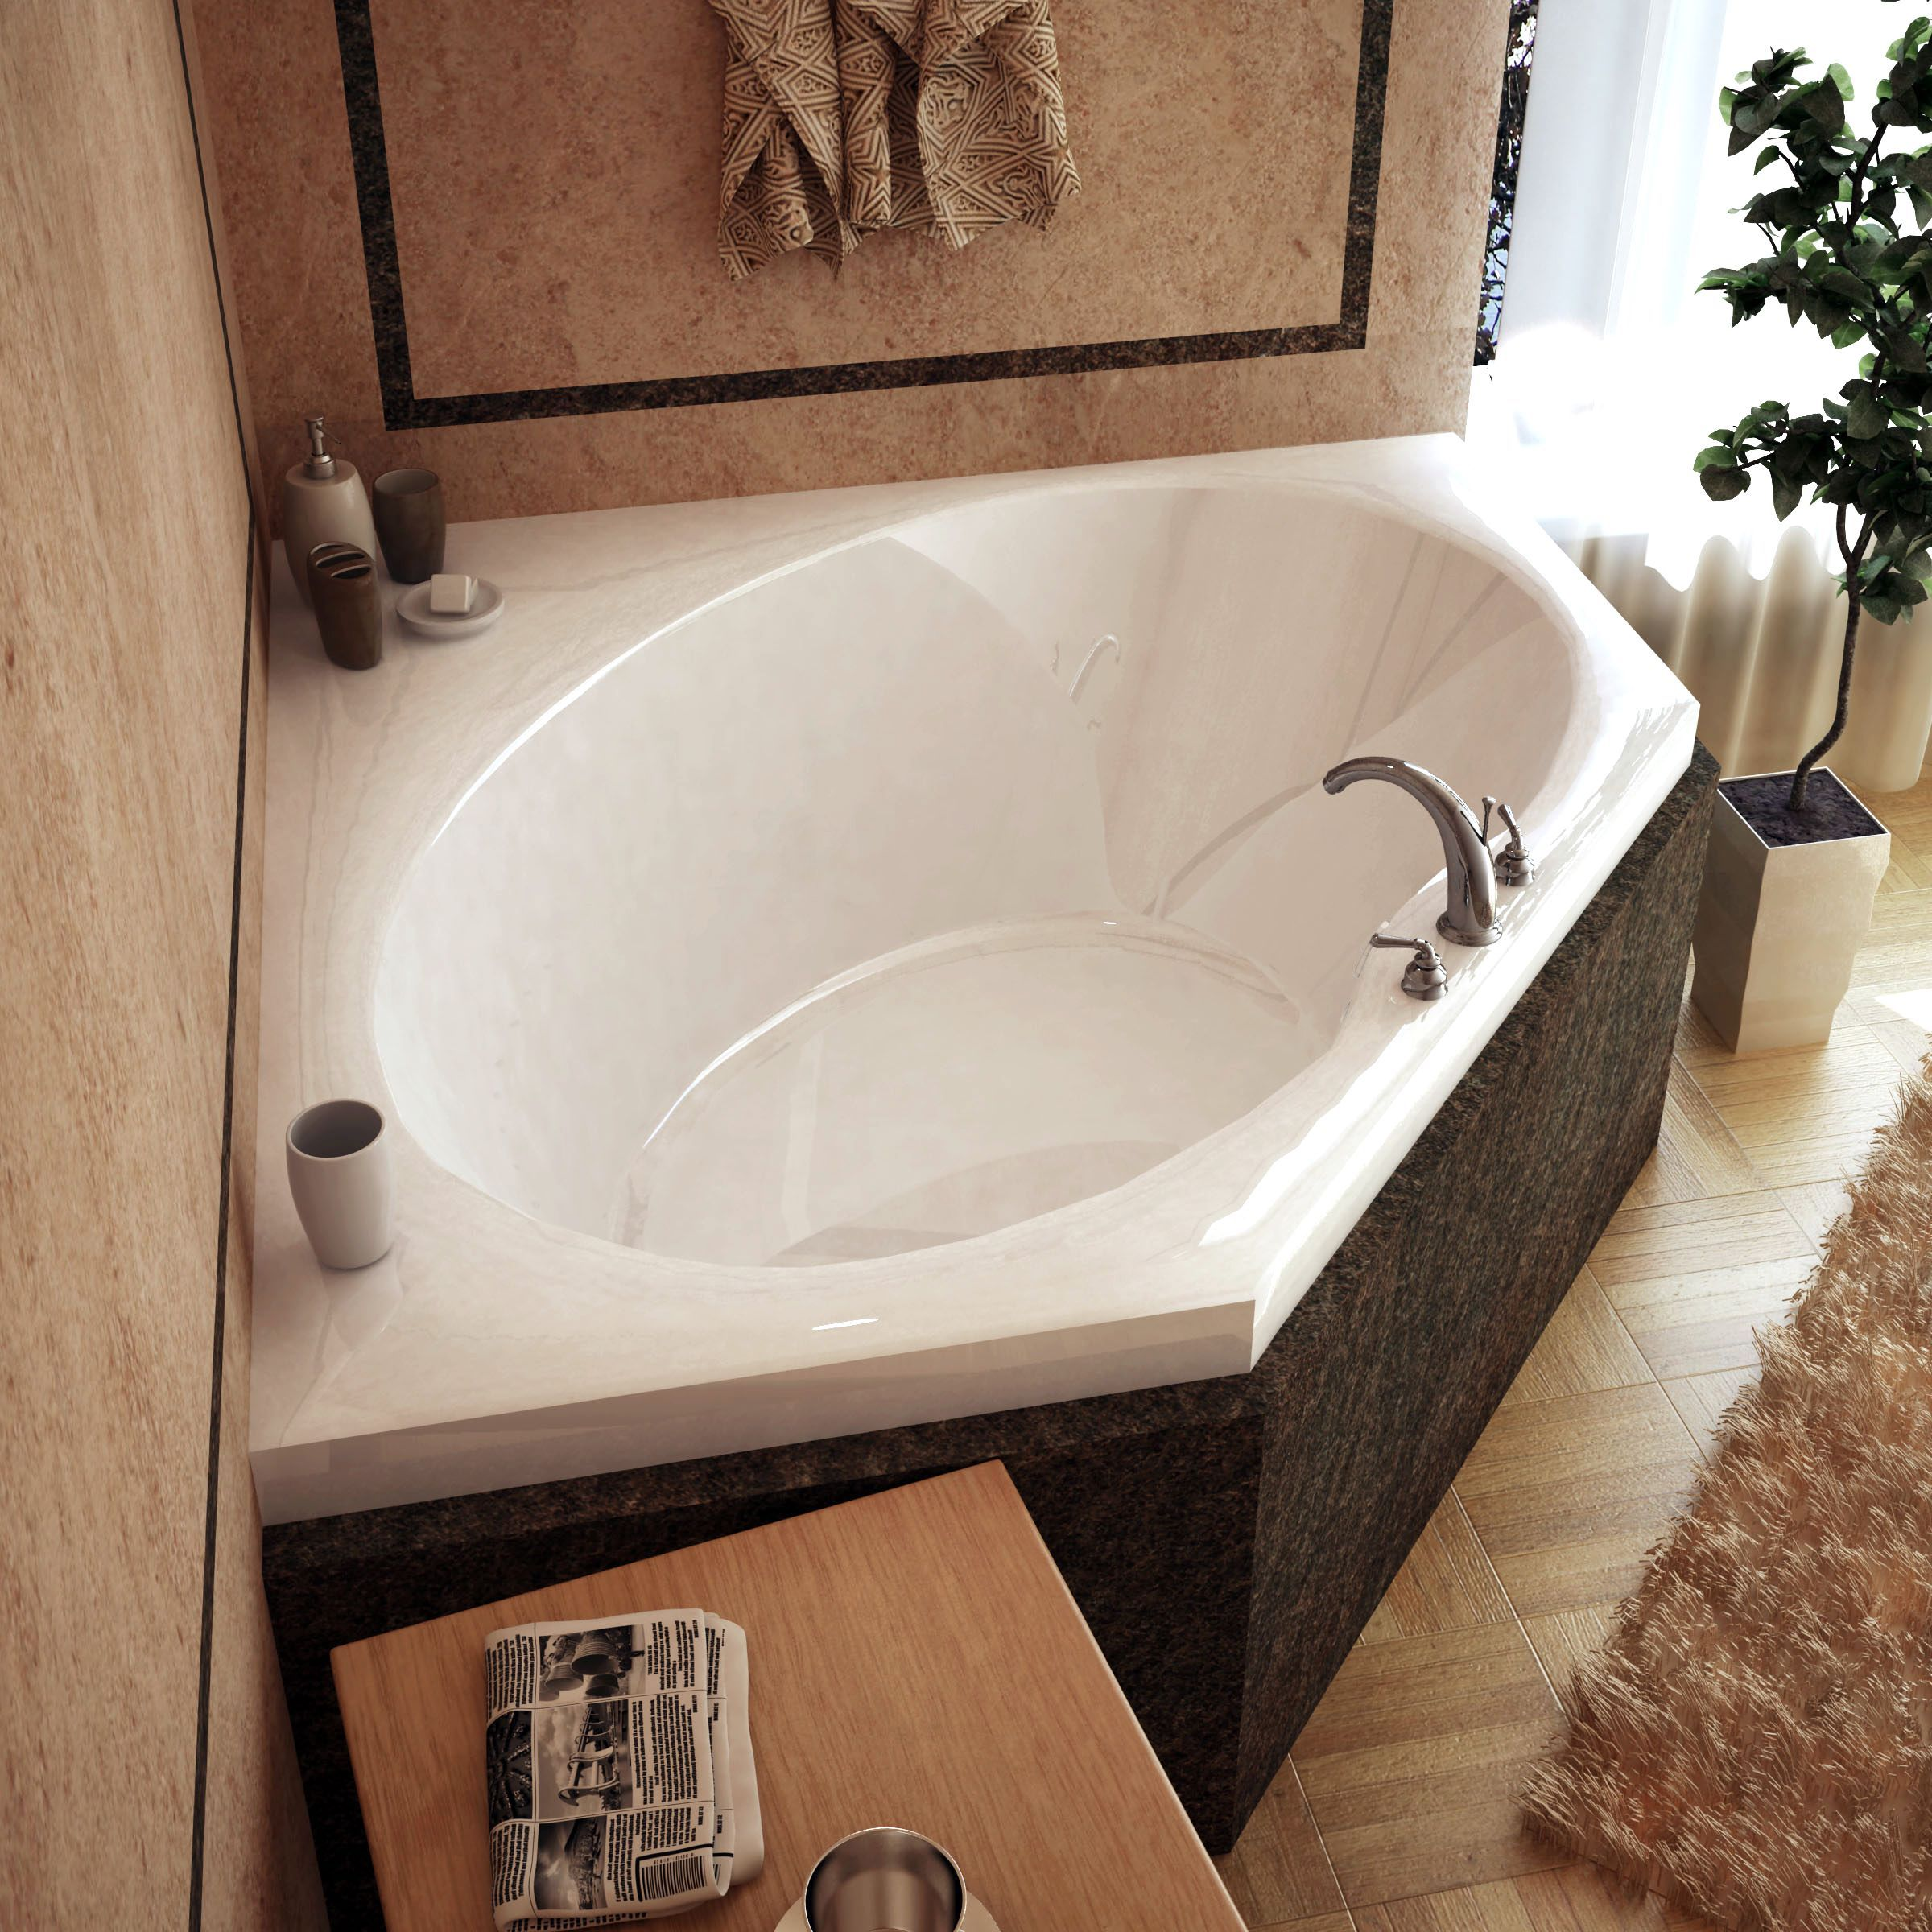 Mountain Home View 60 X Acrylic Soaking Drop In Bathtub Ping The Best Deals On Tubs